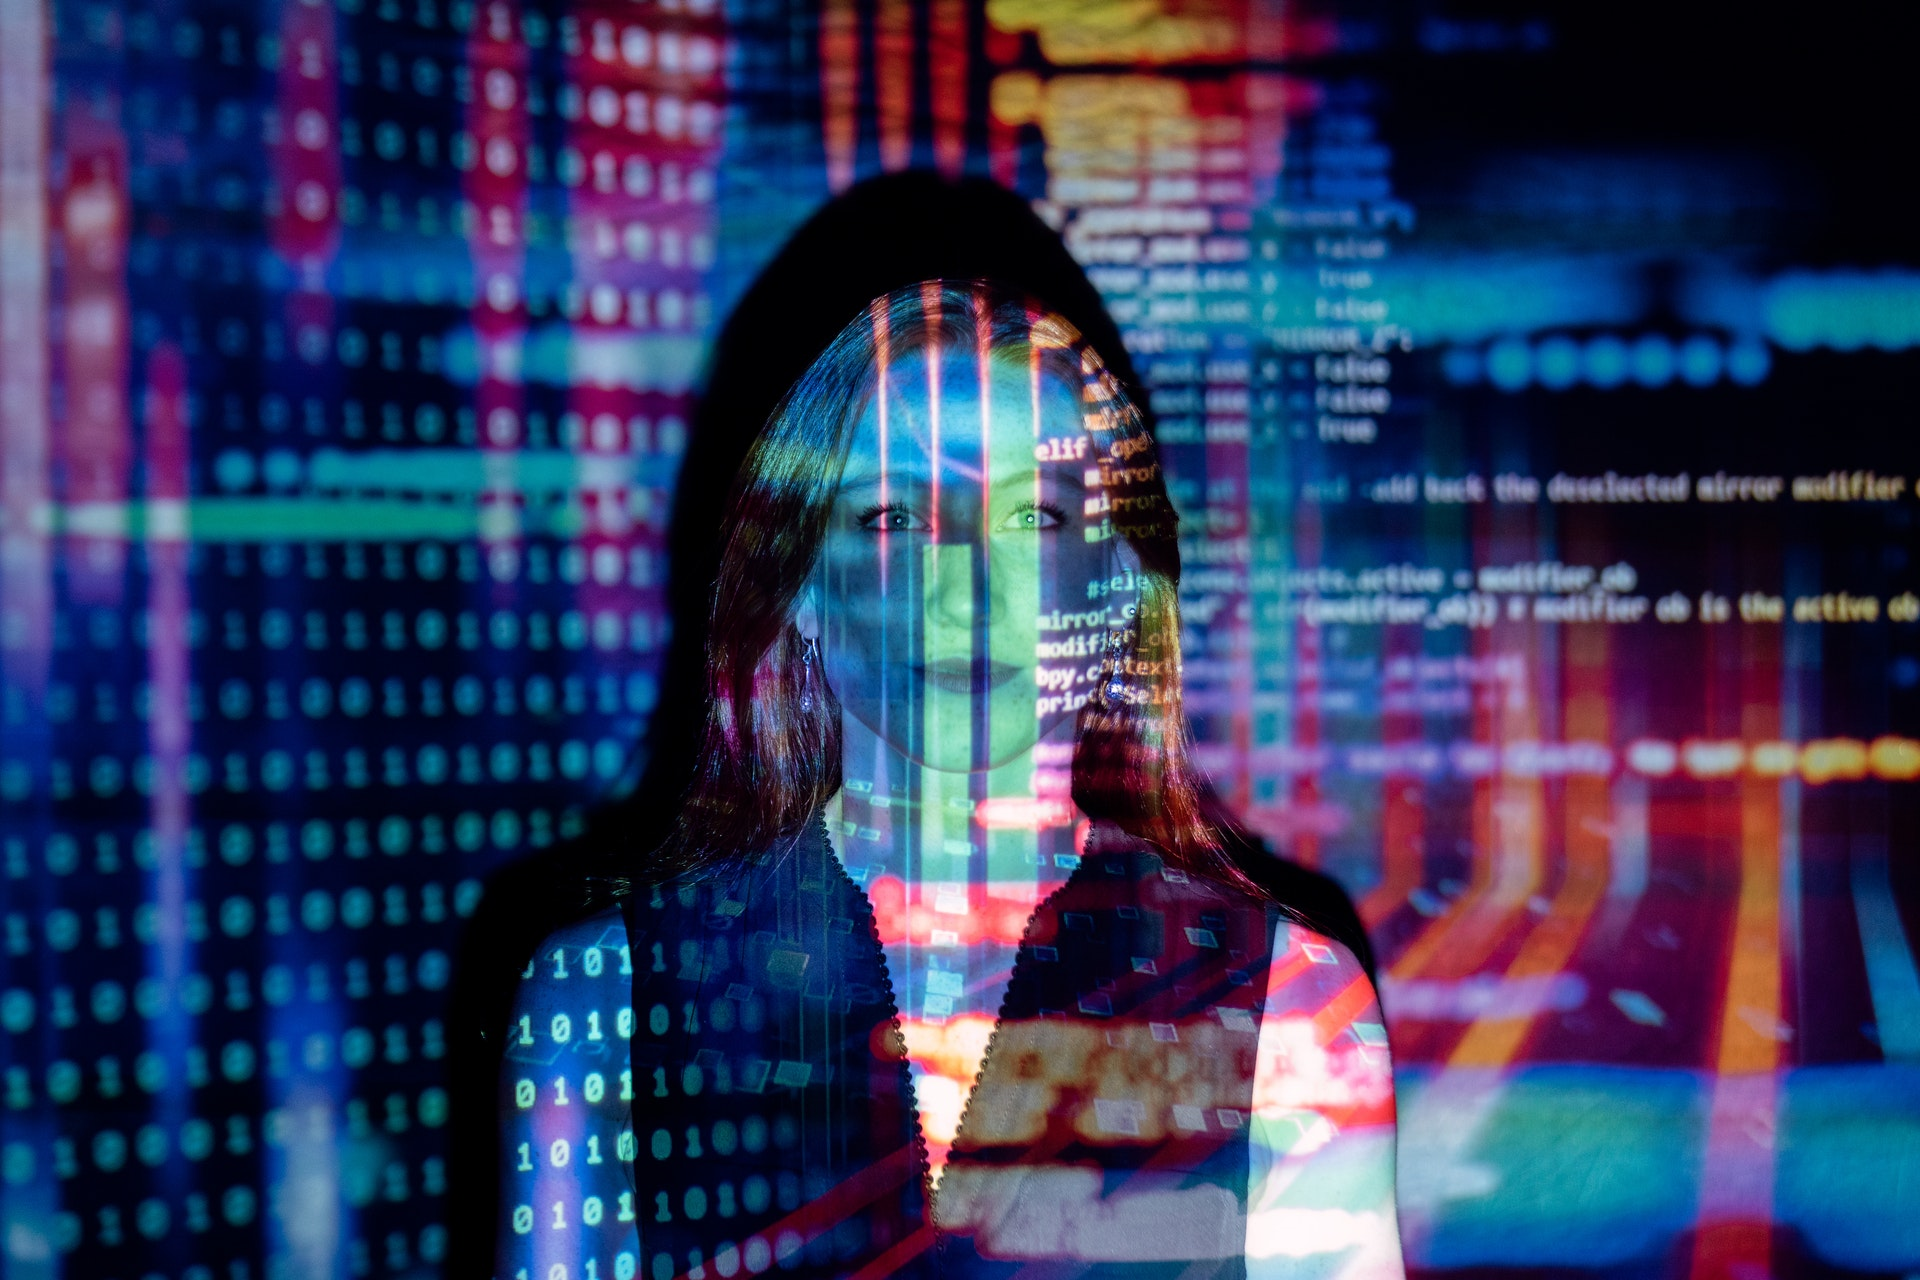 sourcing the best startups - woman behind code projection